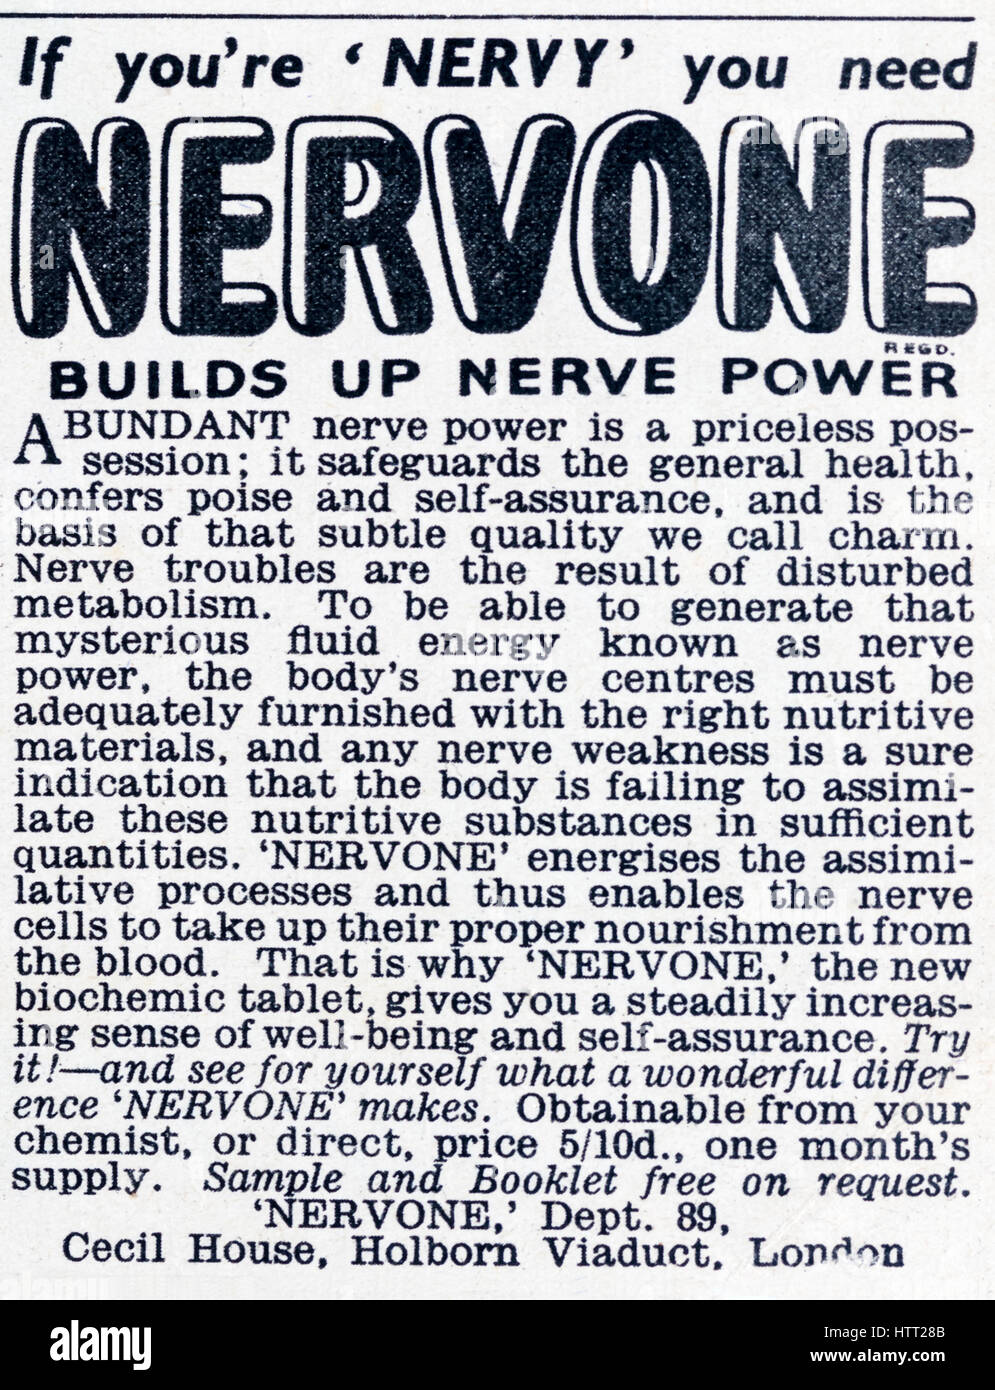 A 1950s magazine advertisement advertising Nervone to build up Nerve Power. - Stock Image